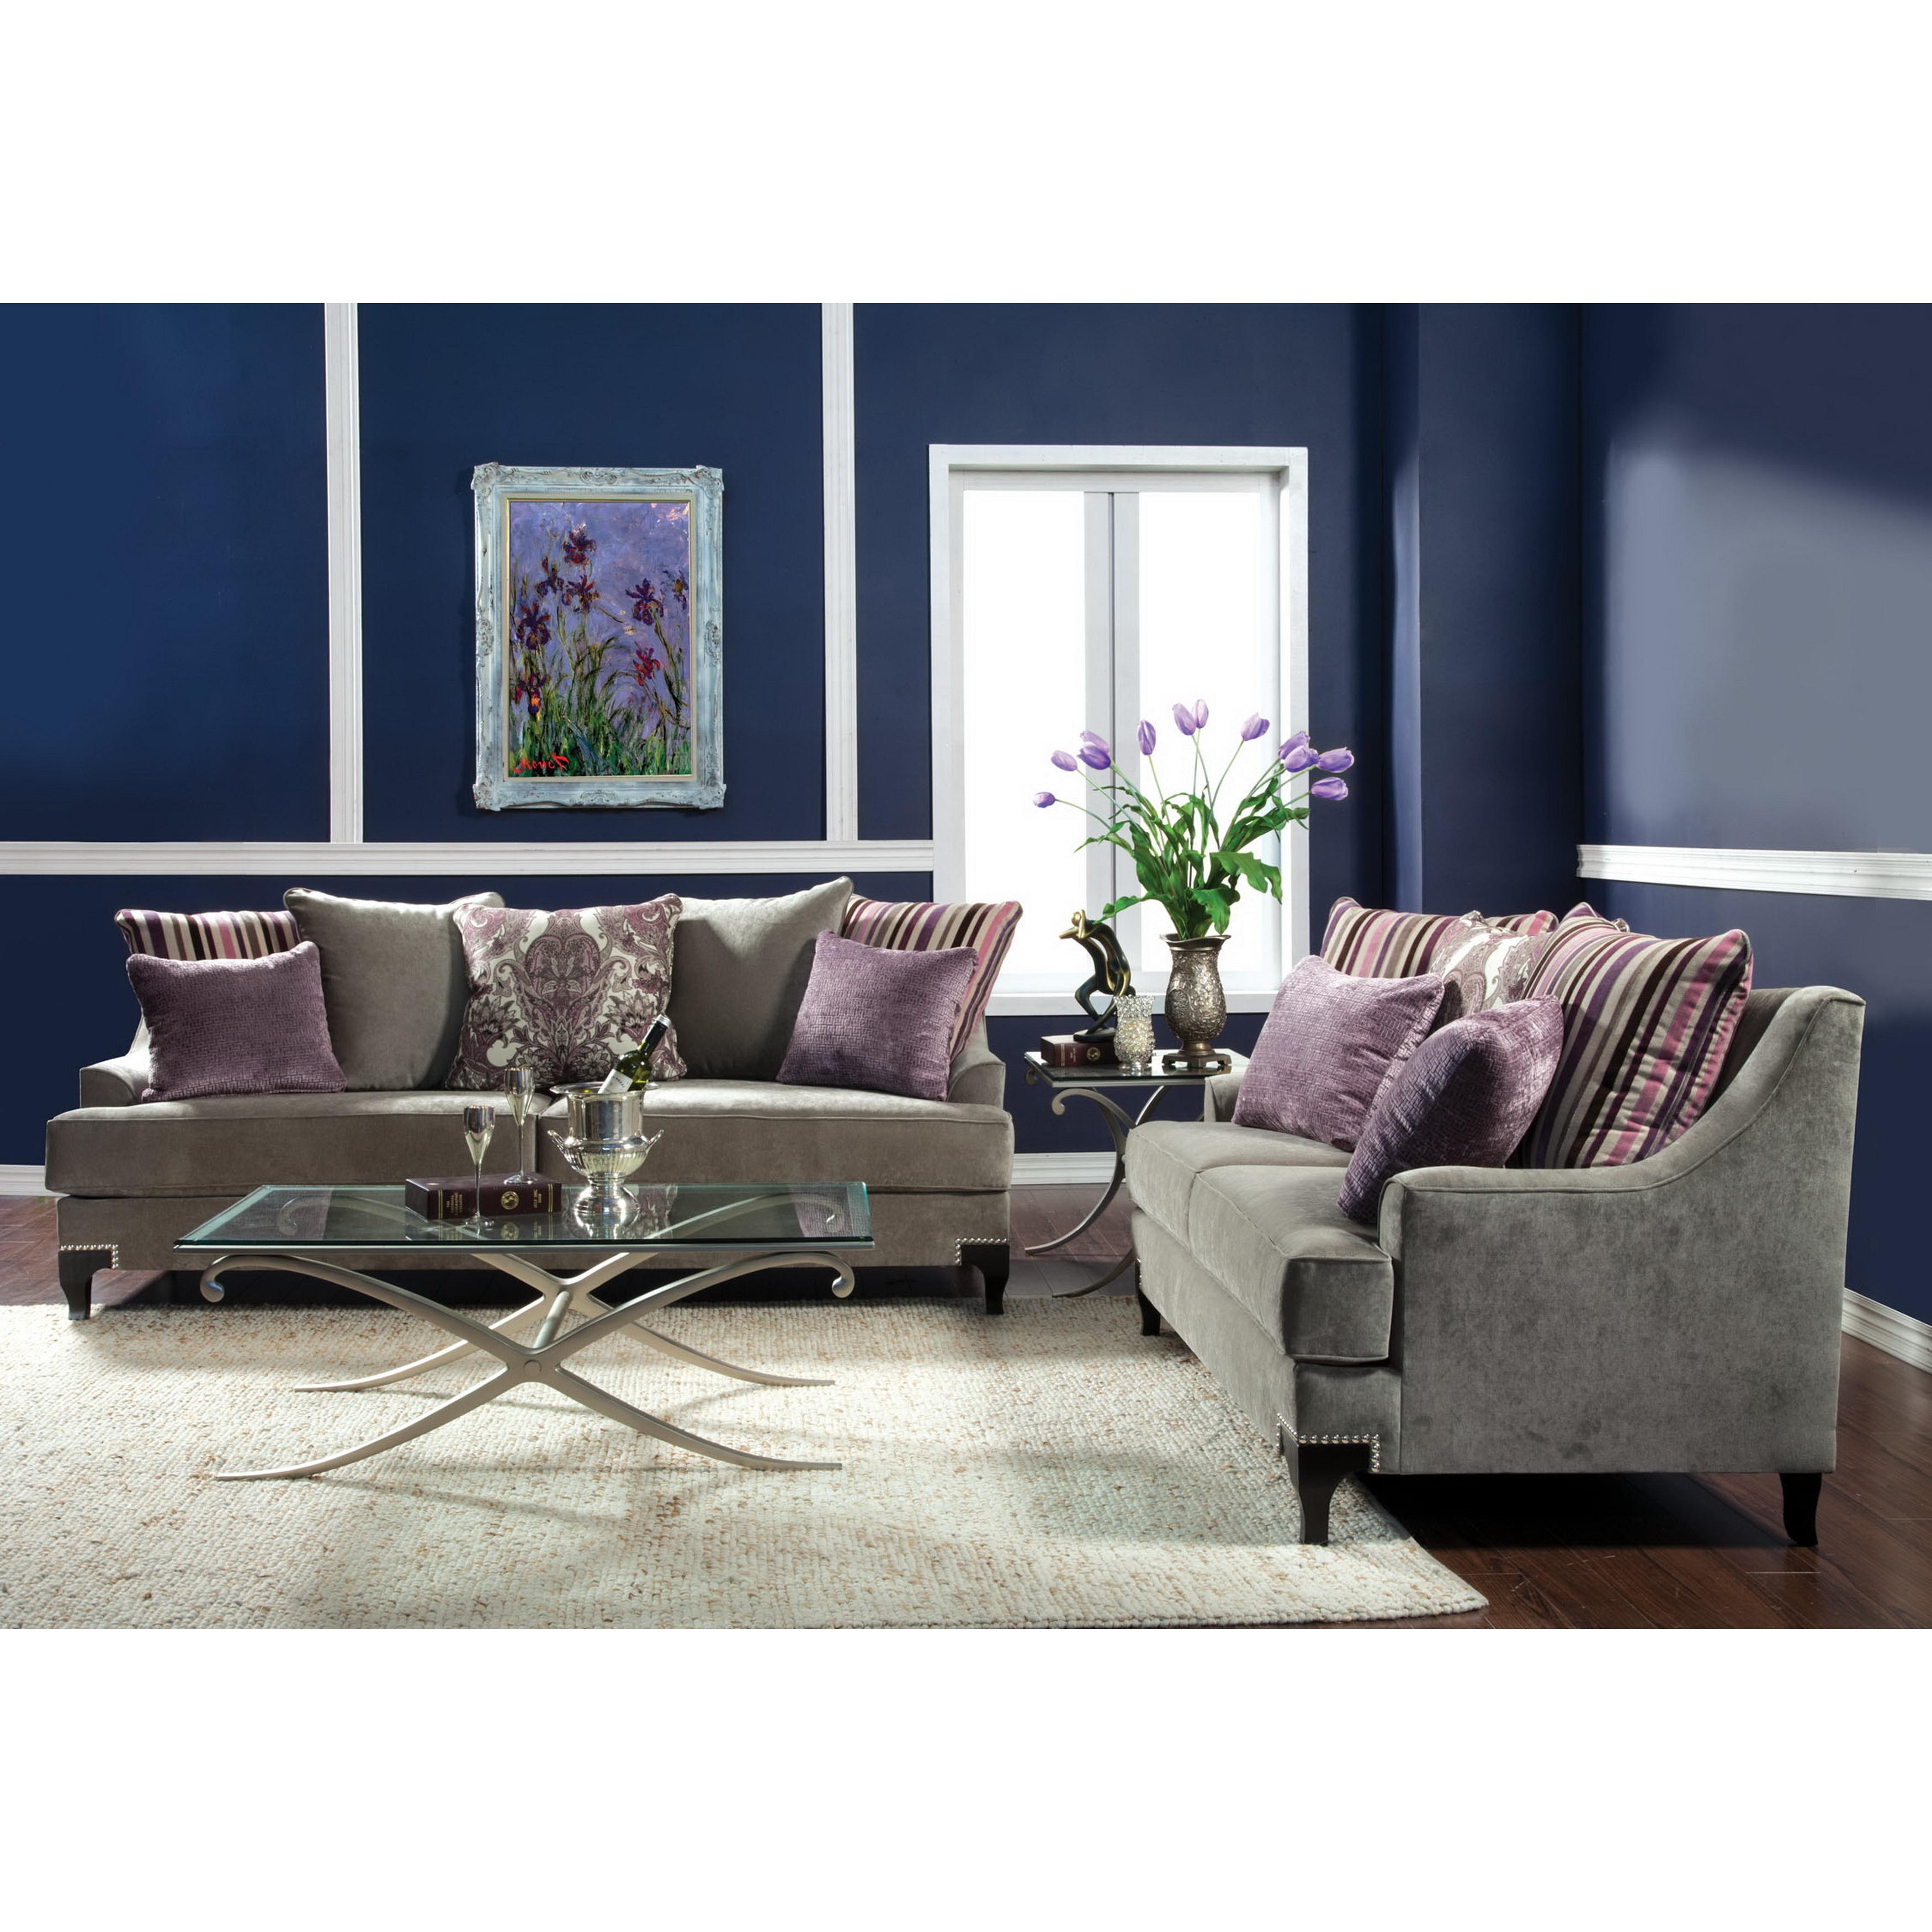 Furniture Of America Visconti Modern 2 Piece Velvet Sofa And